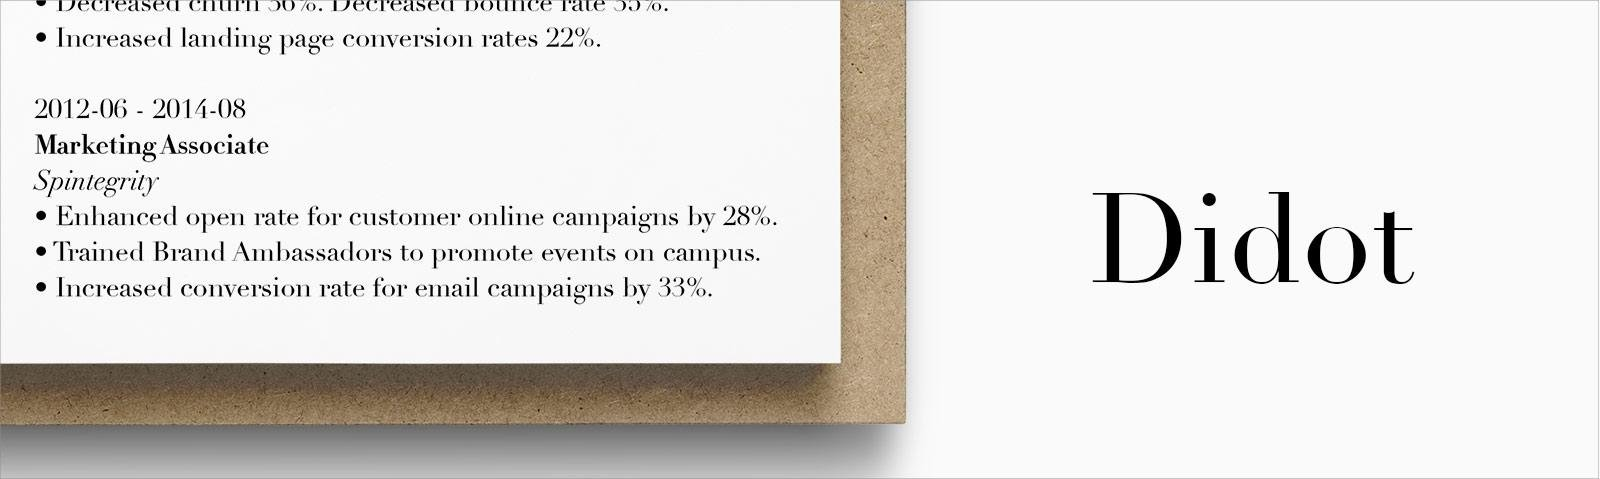 best font for resume size standard professional pairings didot executive template free Resume Best Font Size For Resume 2020